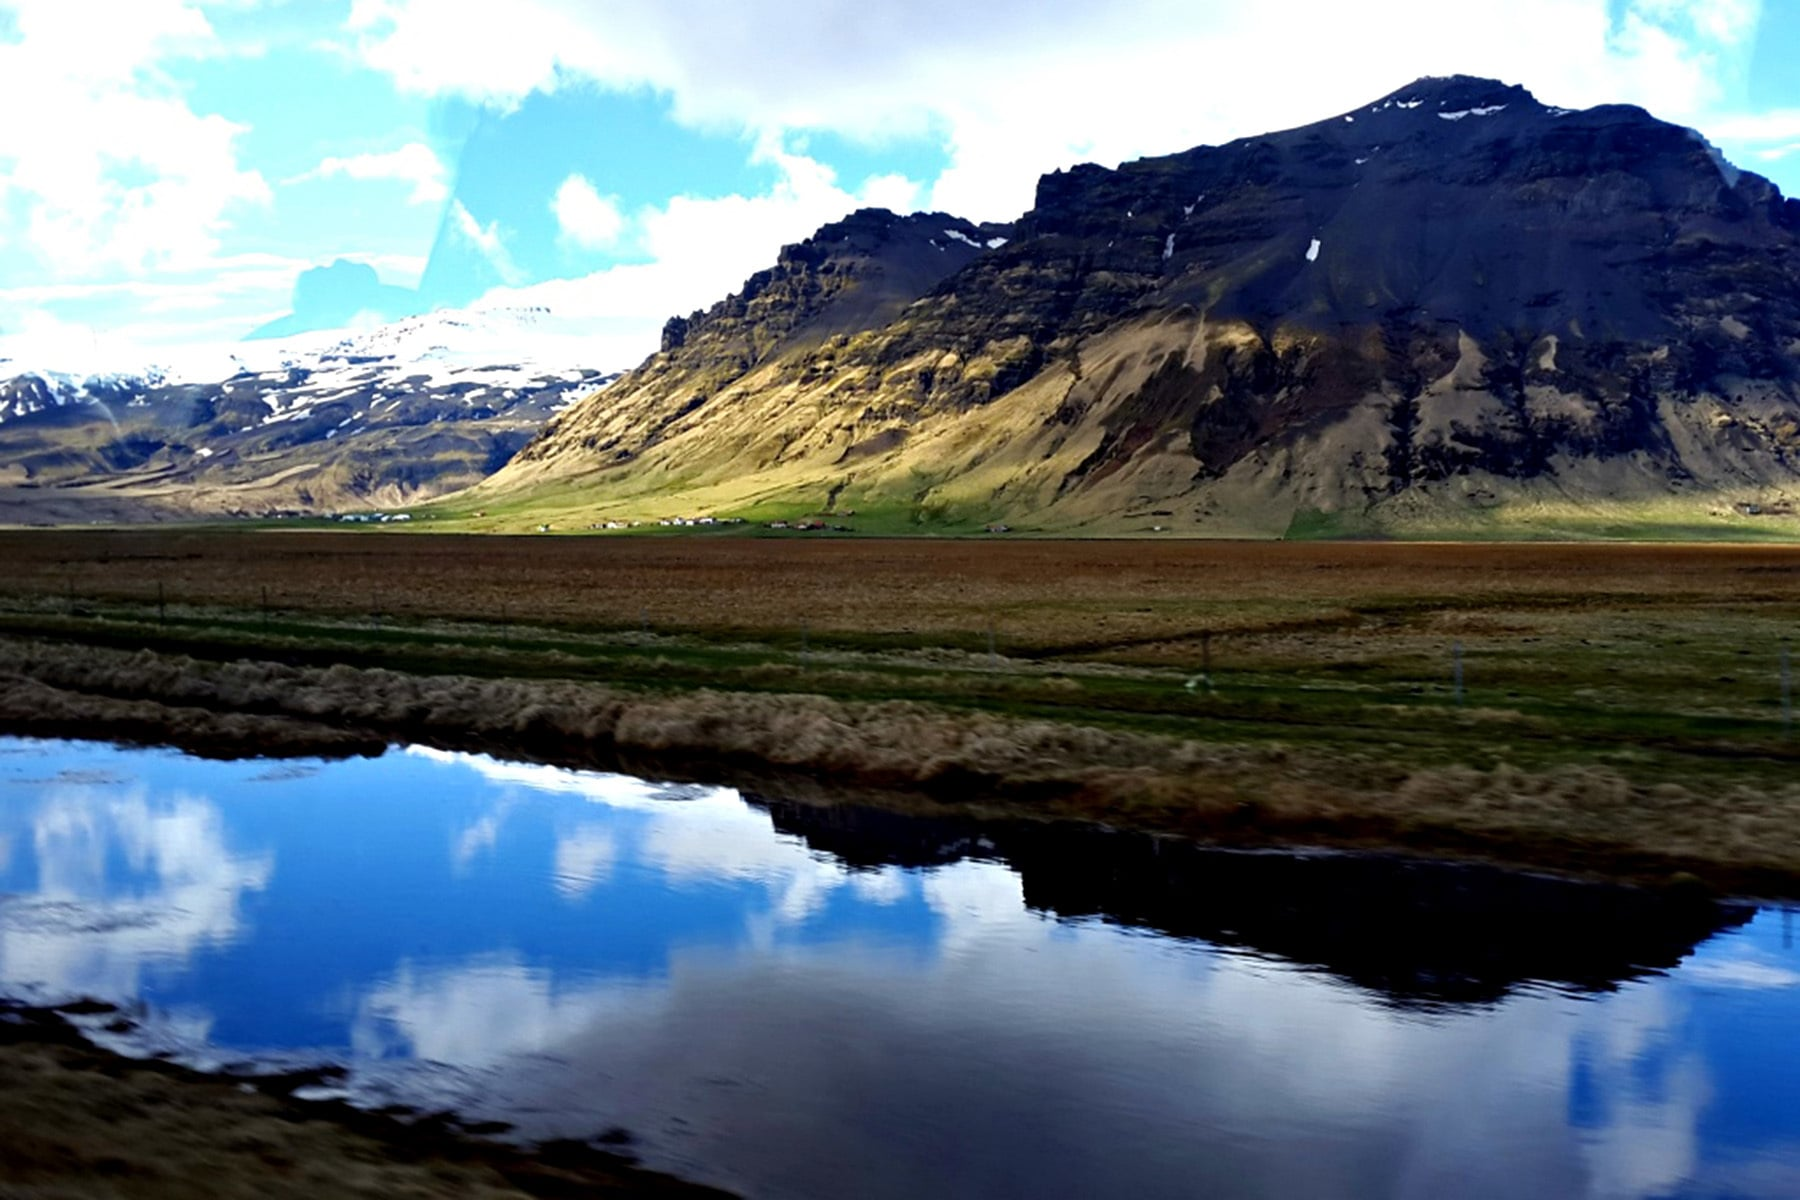 Iceland's landscape is dotted by volcanoes, glaciers, rivers, small villages and farms.